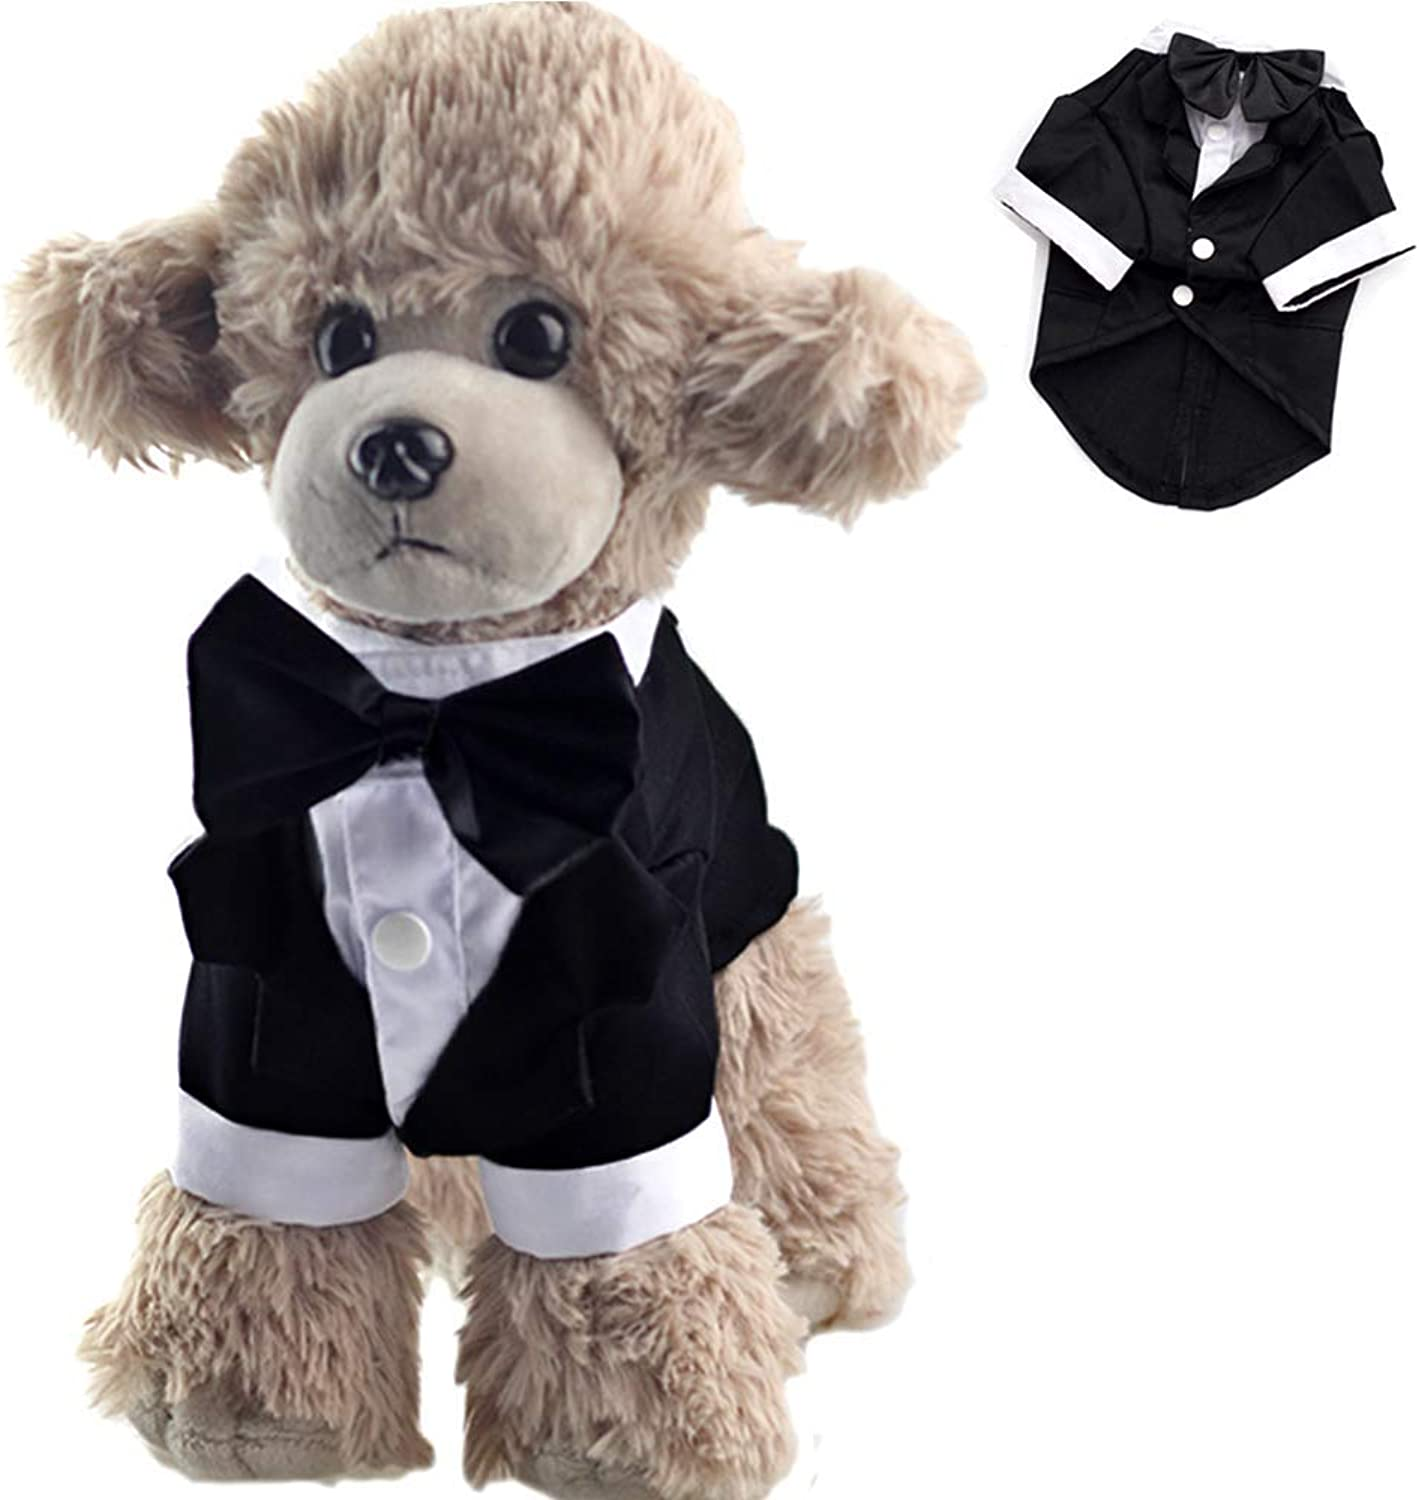 ANIAC Formal Suit Wedding Party Tuxedo Black BowKnot White Collar Stylish Tail Clothes Cats Dogs (XXLarge)